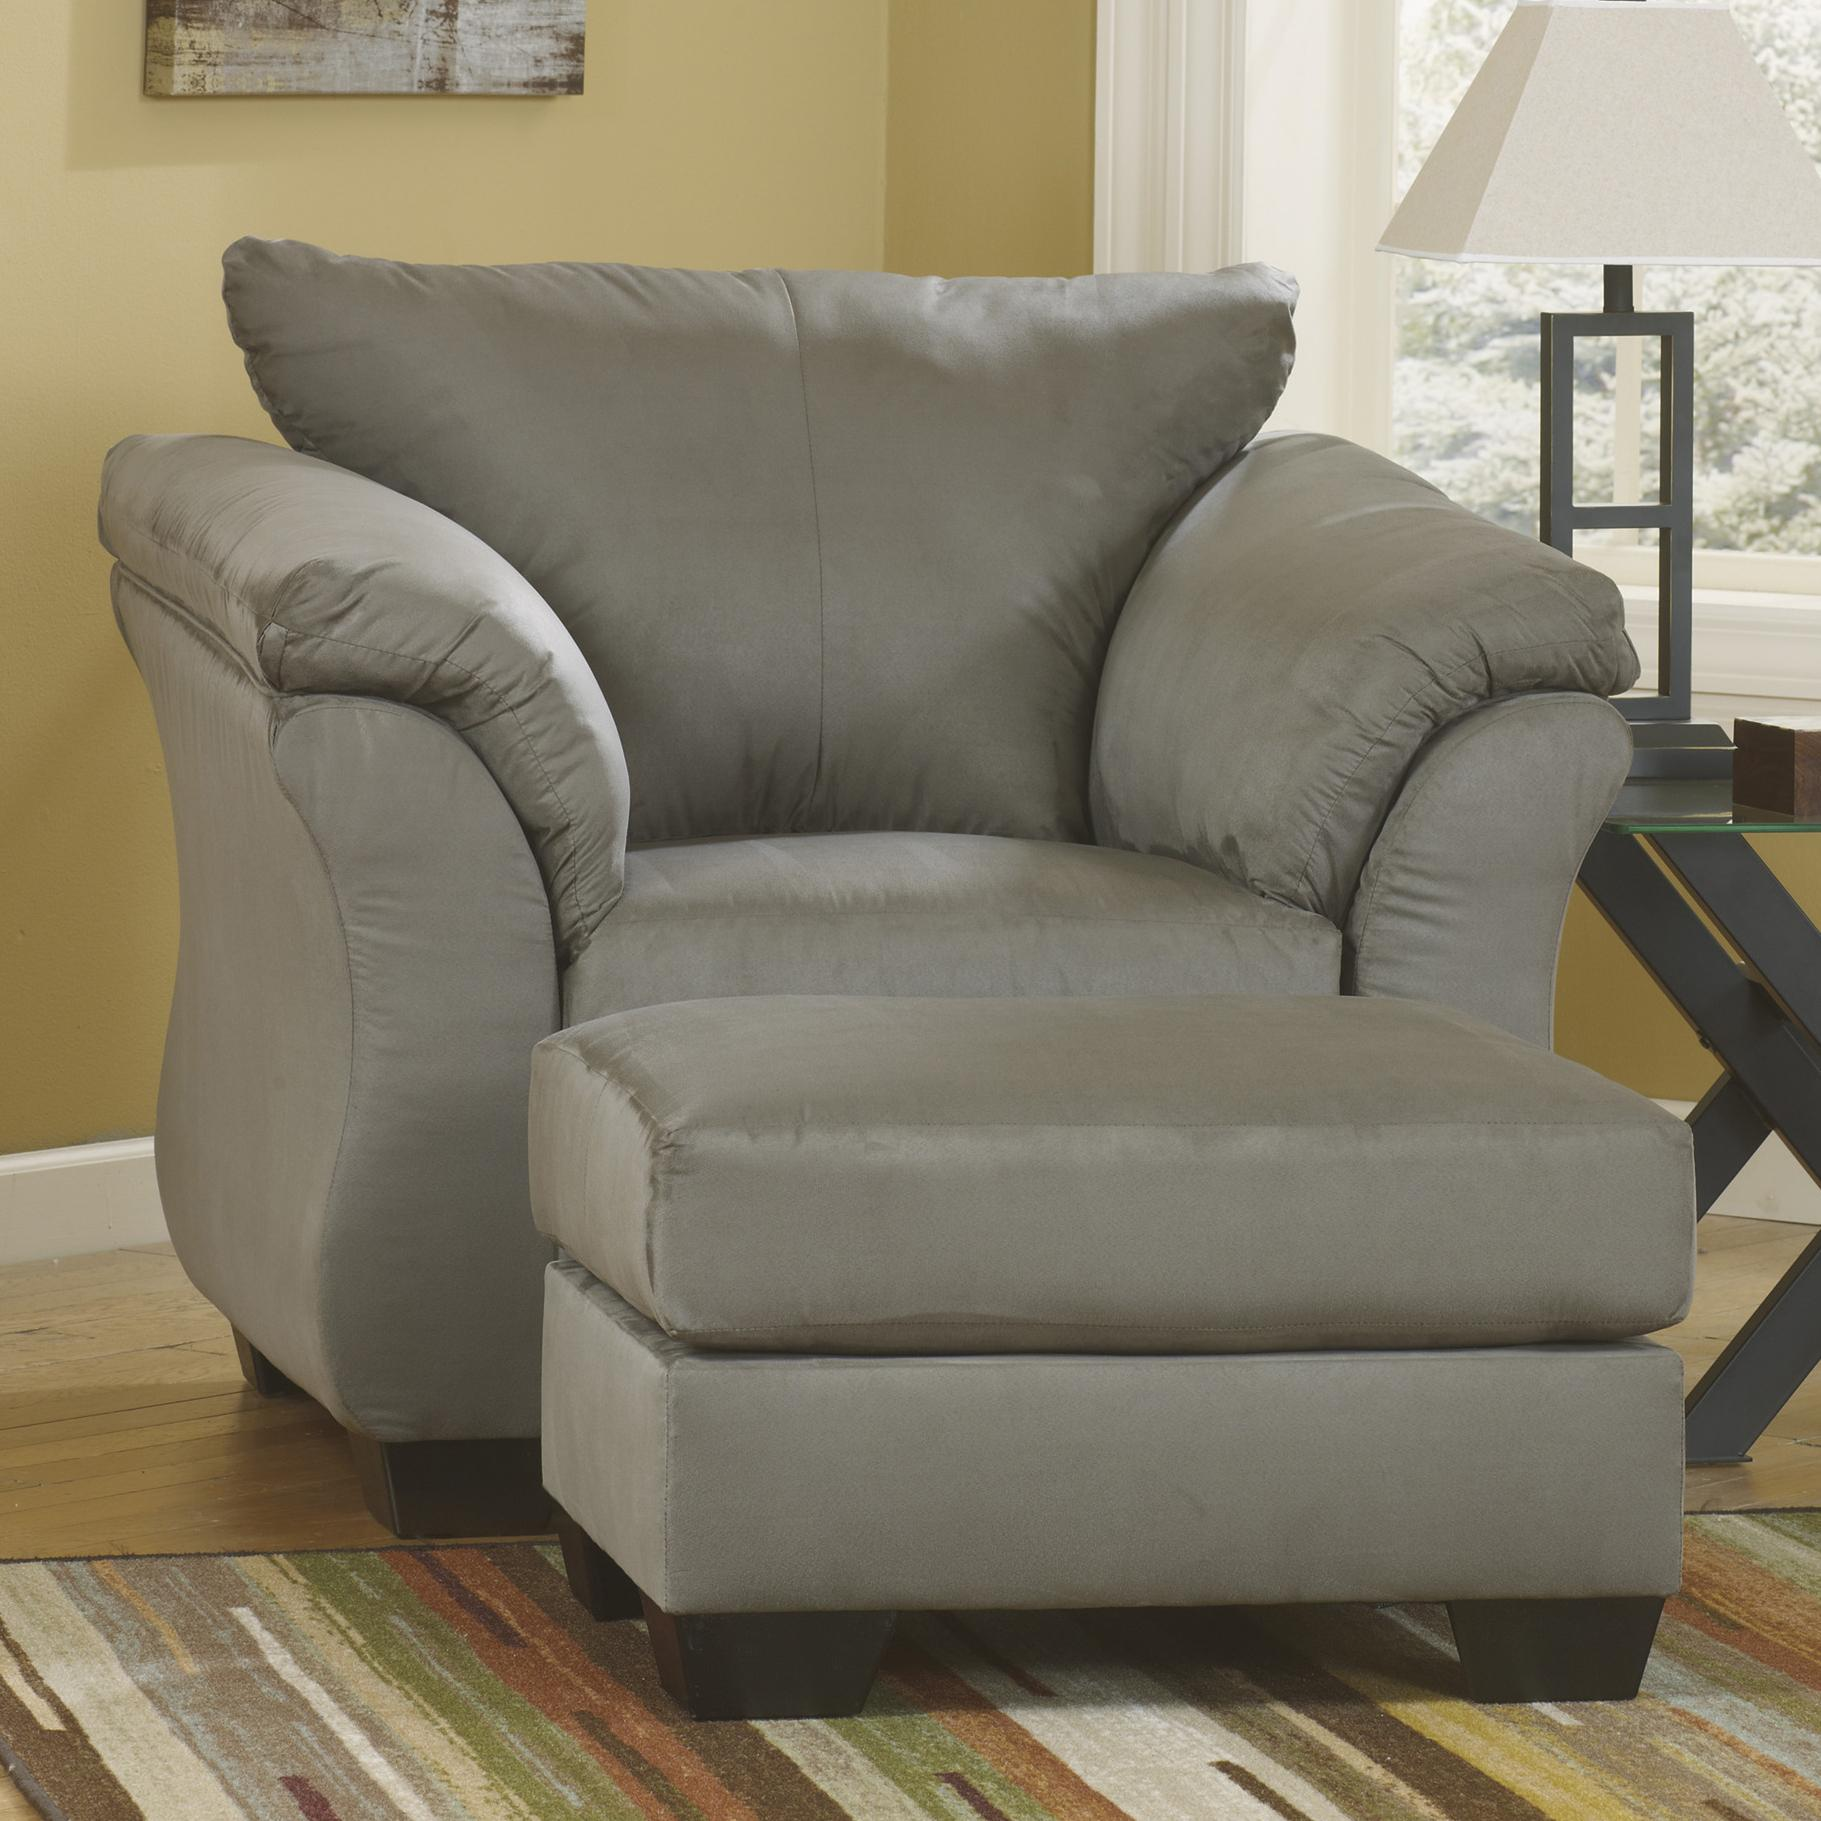 chairs and ottomans upholstered recliner chair throw covers contemporary ottoman with tapered legs by